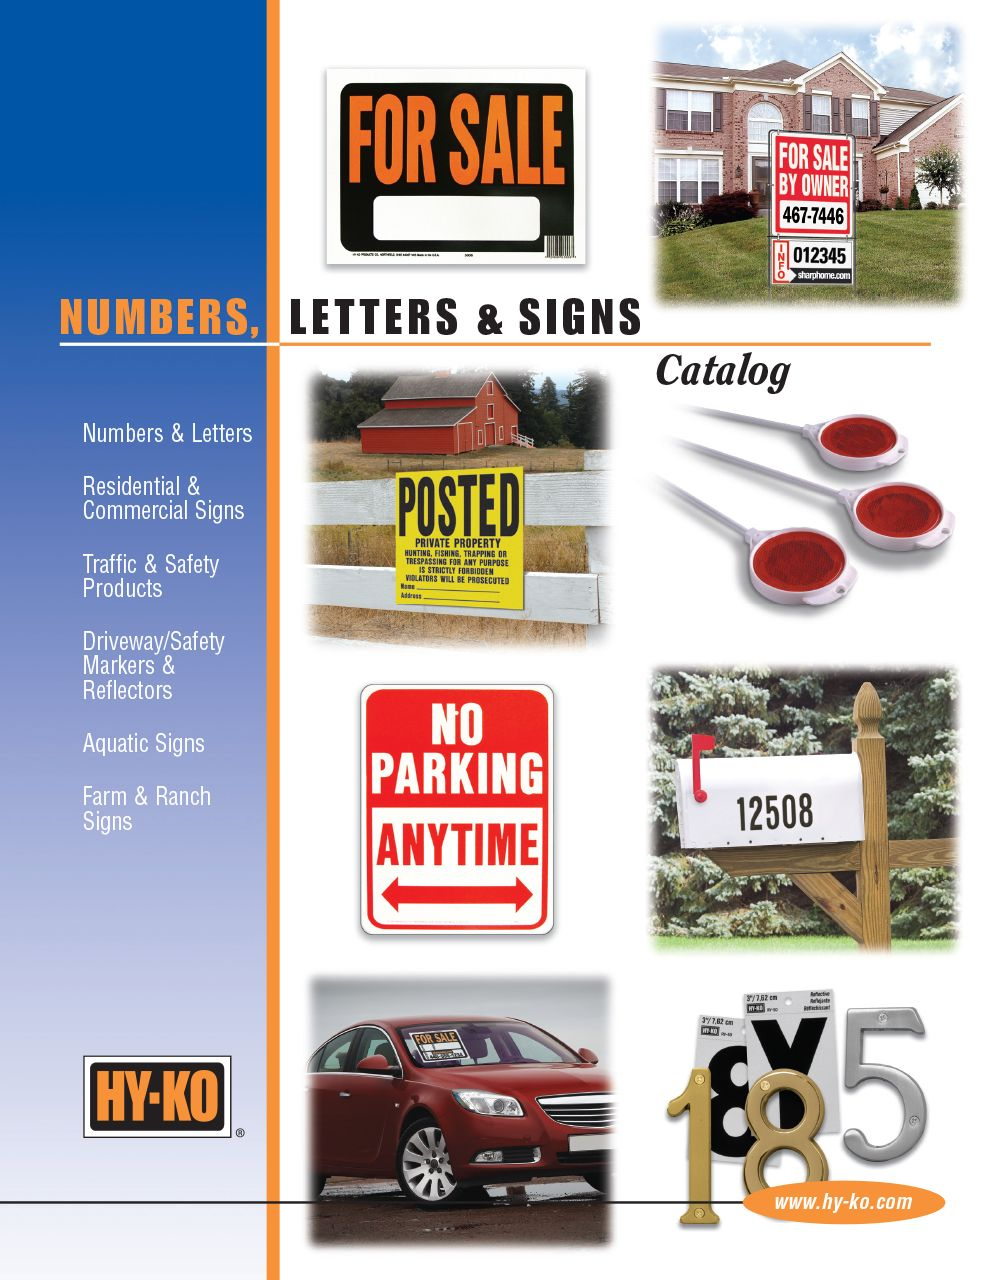 Numbers, Letters, and Signs Catalog